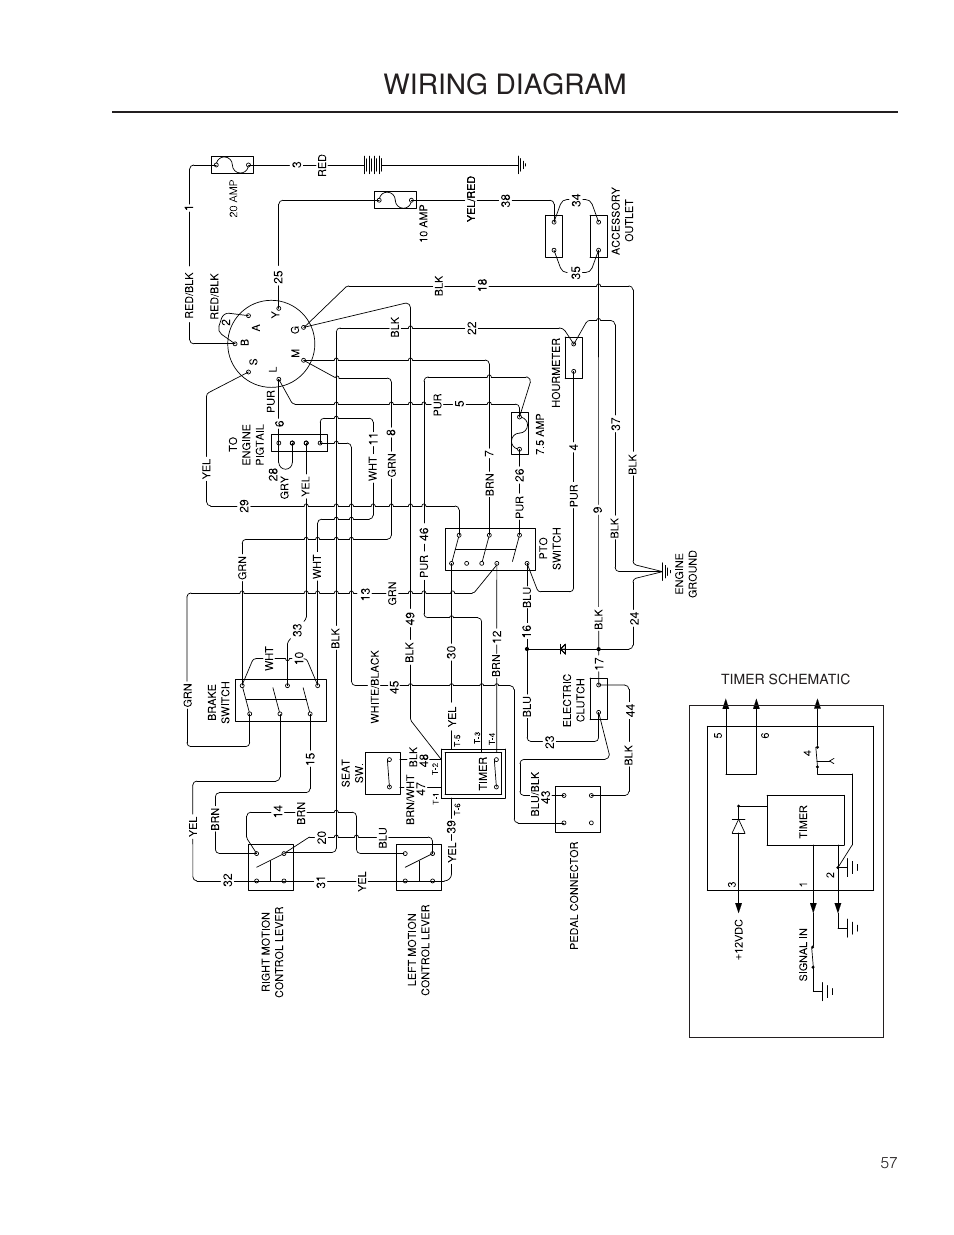 Wiring diagrams diagram yazoo kees zpkw user